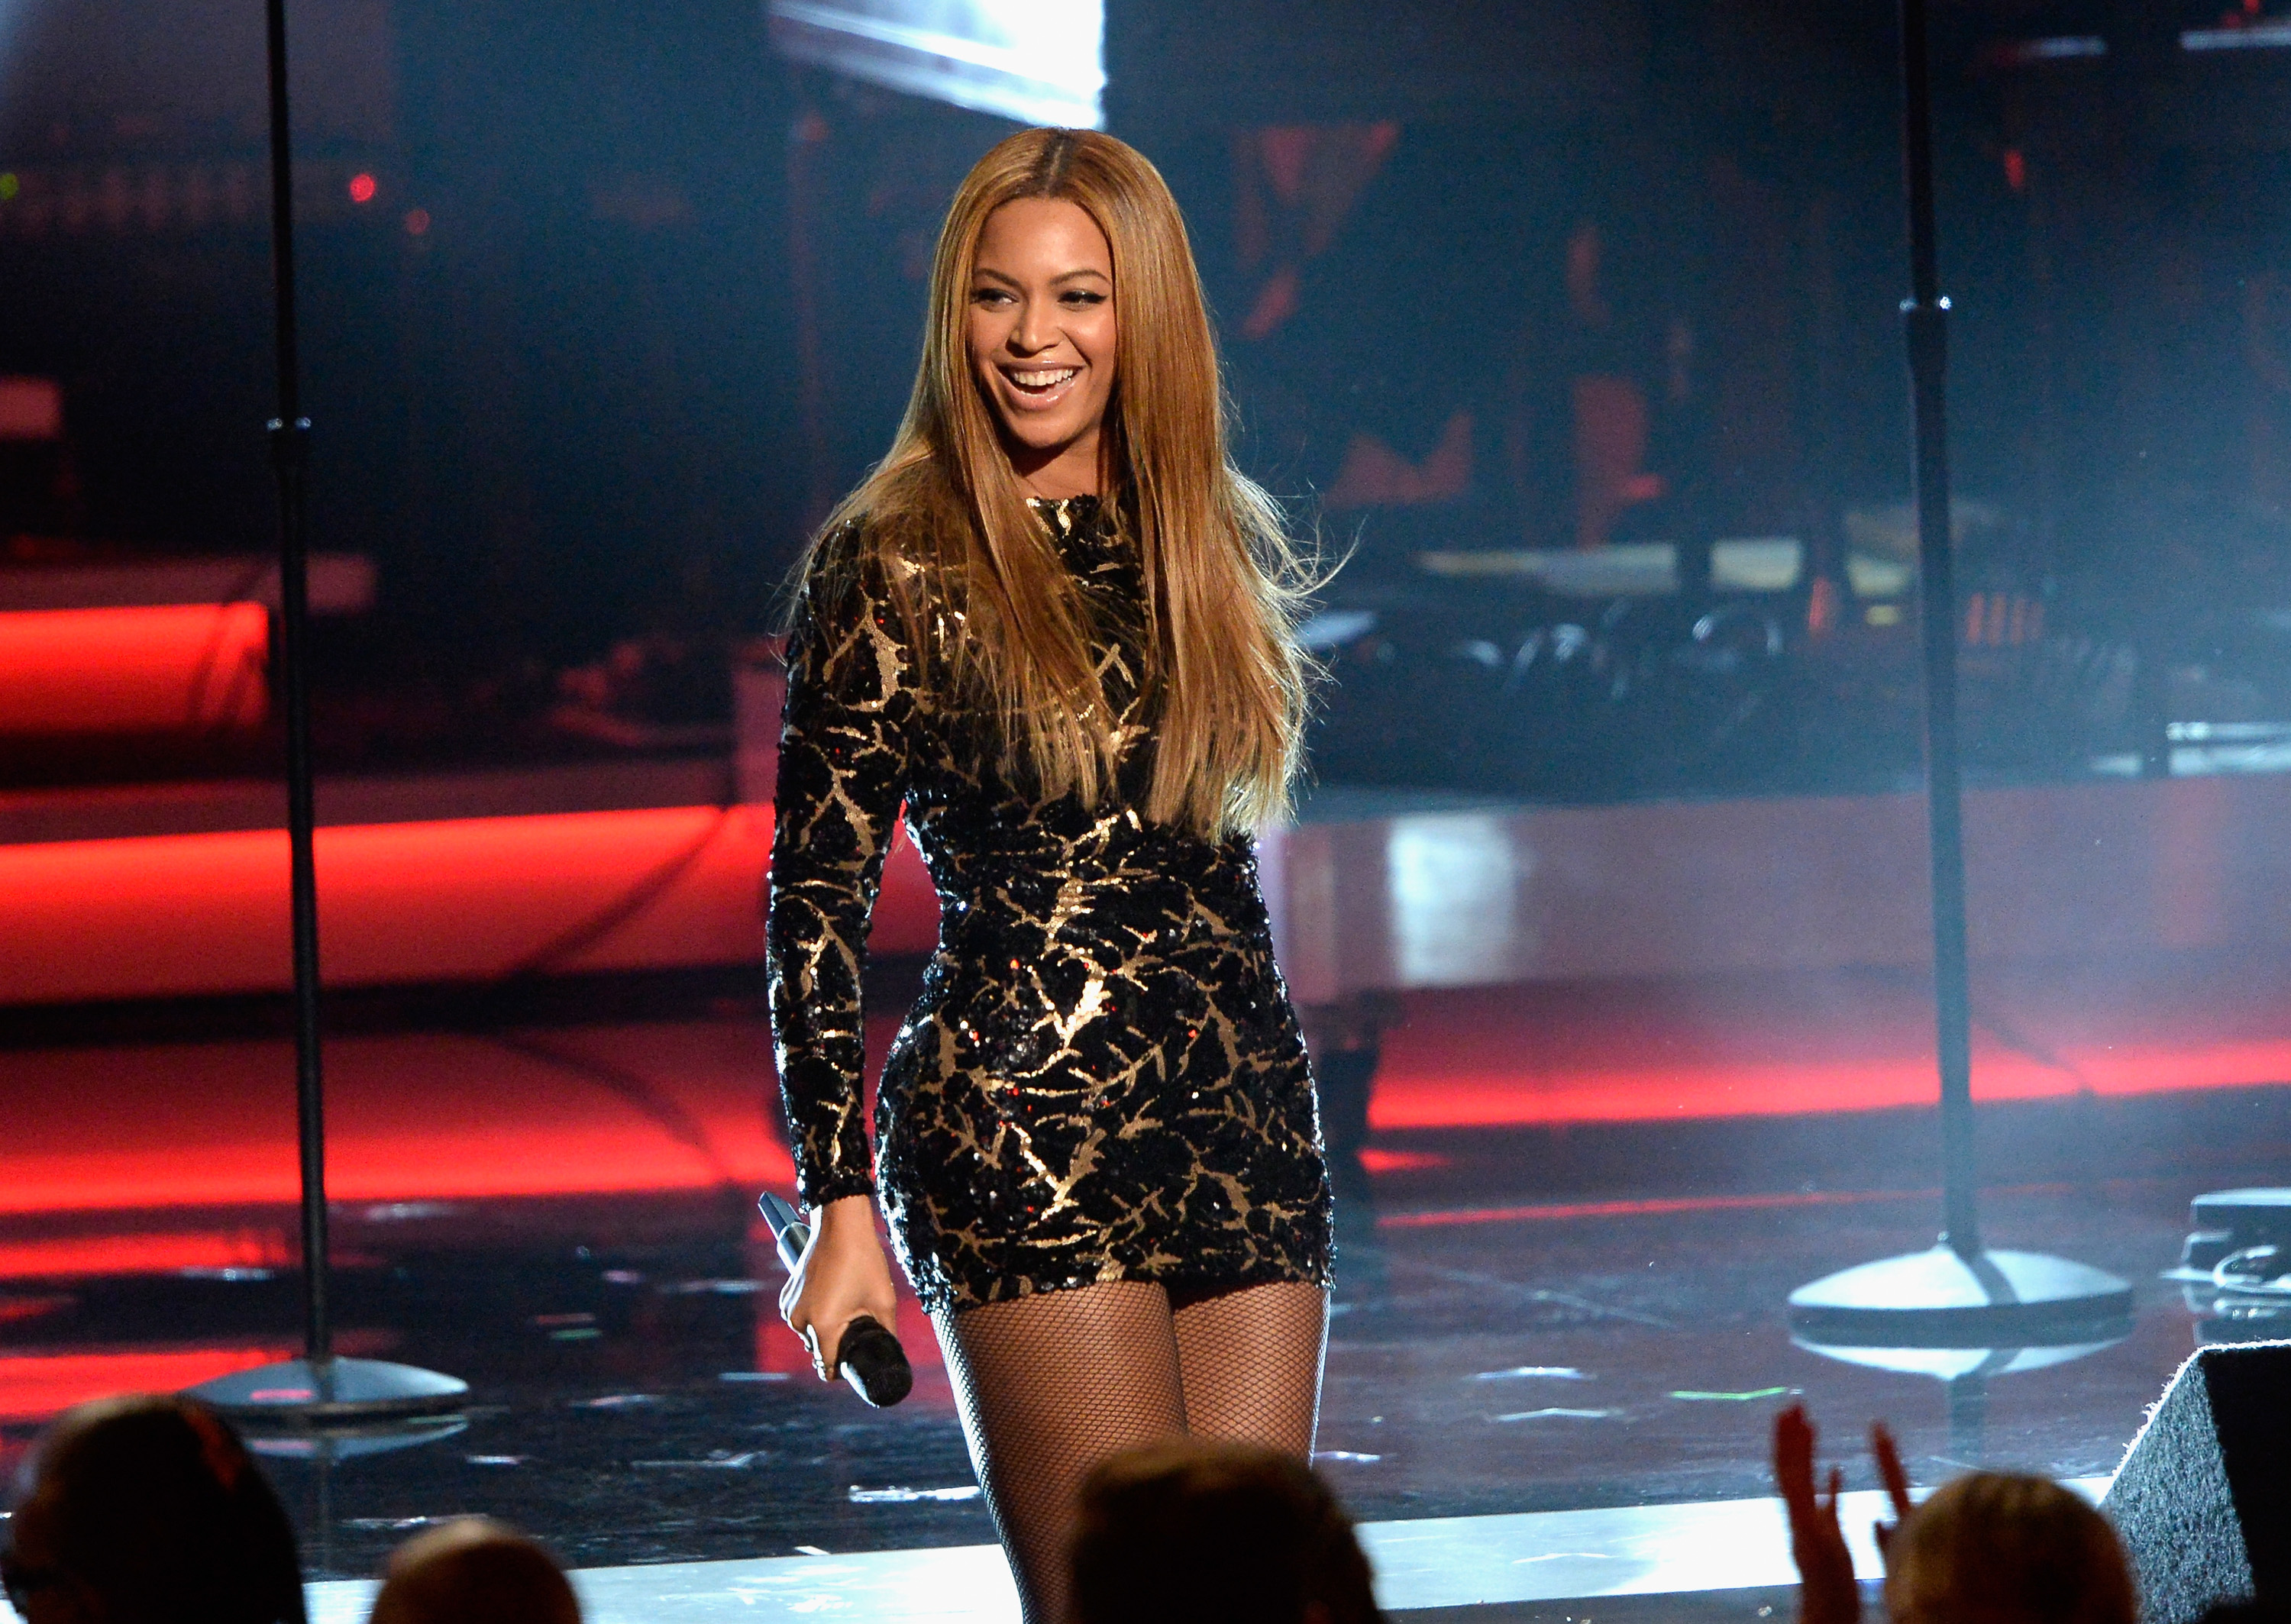 performs onstage during Stevie Wonder: Songs In The Key Of Life - An All-Star GRAMMY Salute at Nokia Theatre L.A. Live on February 10, 2015 in Los Angeles, California.